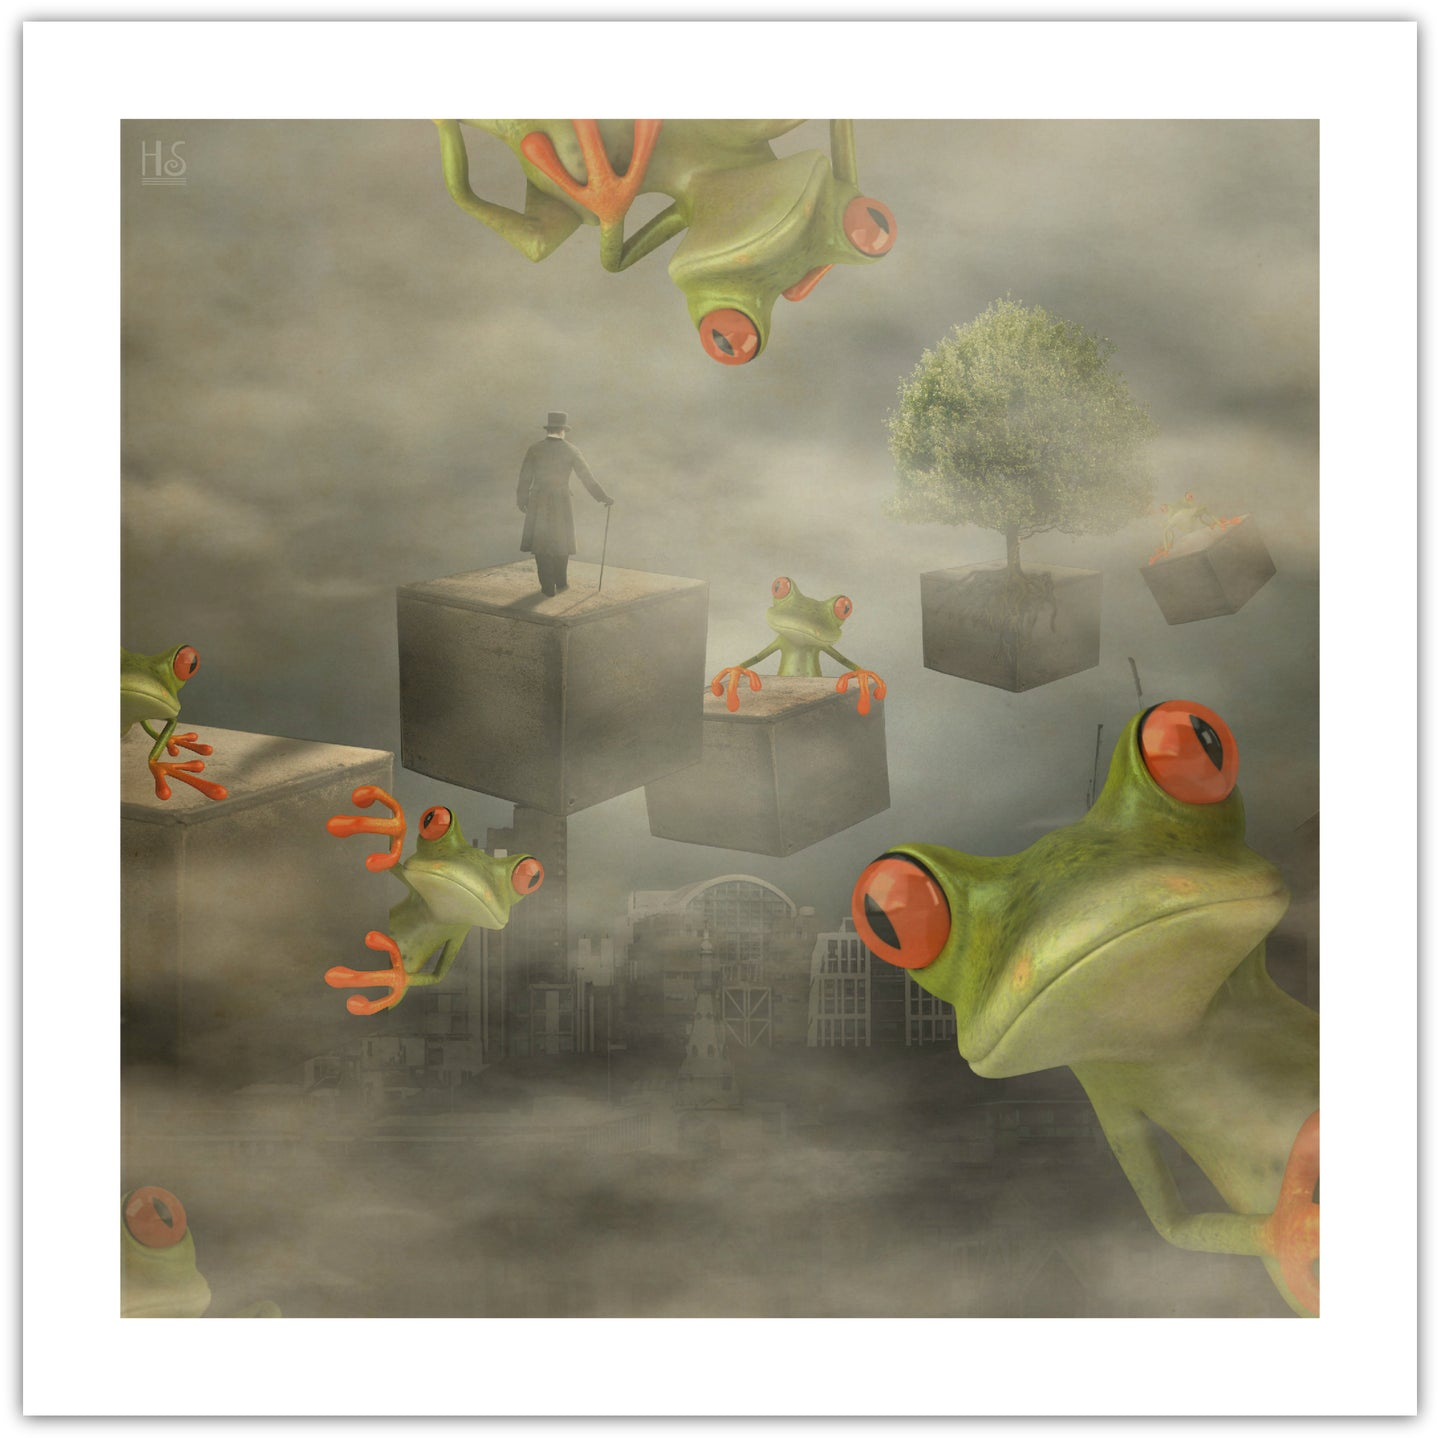 Fog and Frogs - surrealistisk kunsttryk af Helt Sort